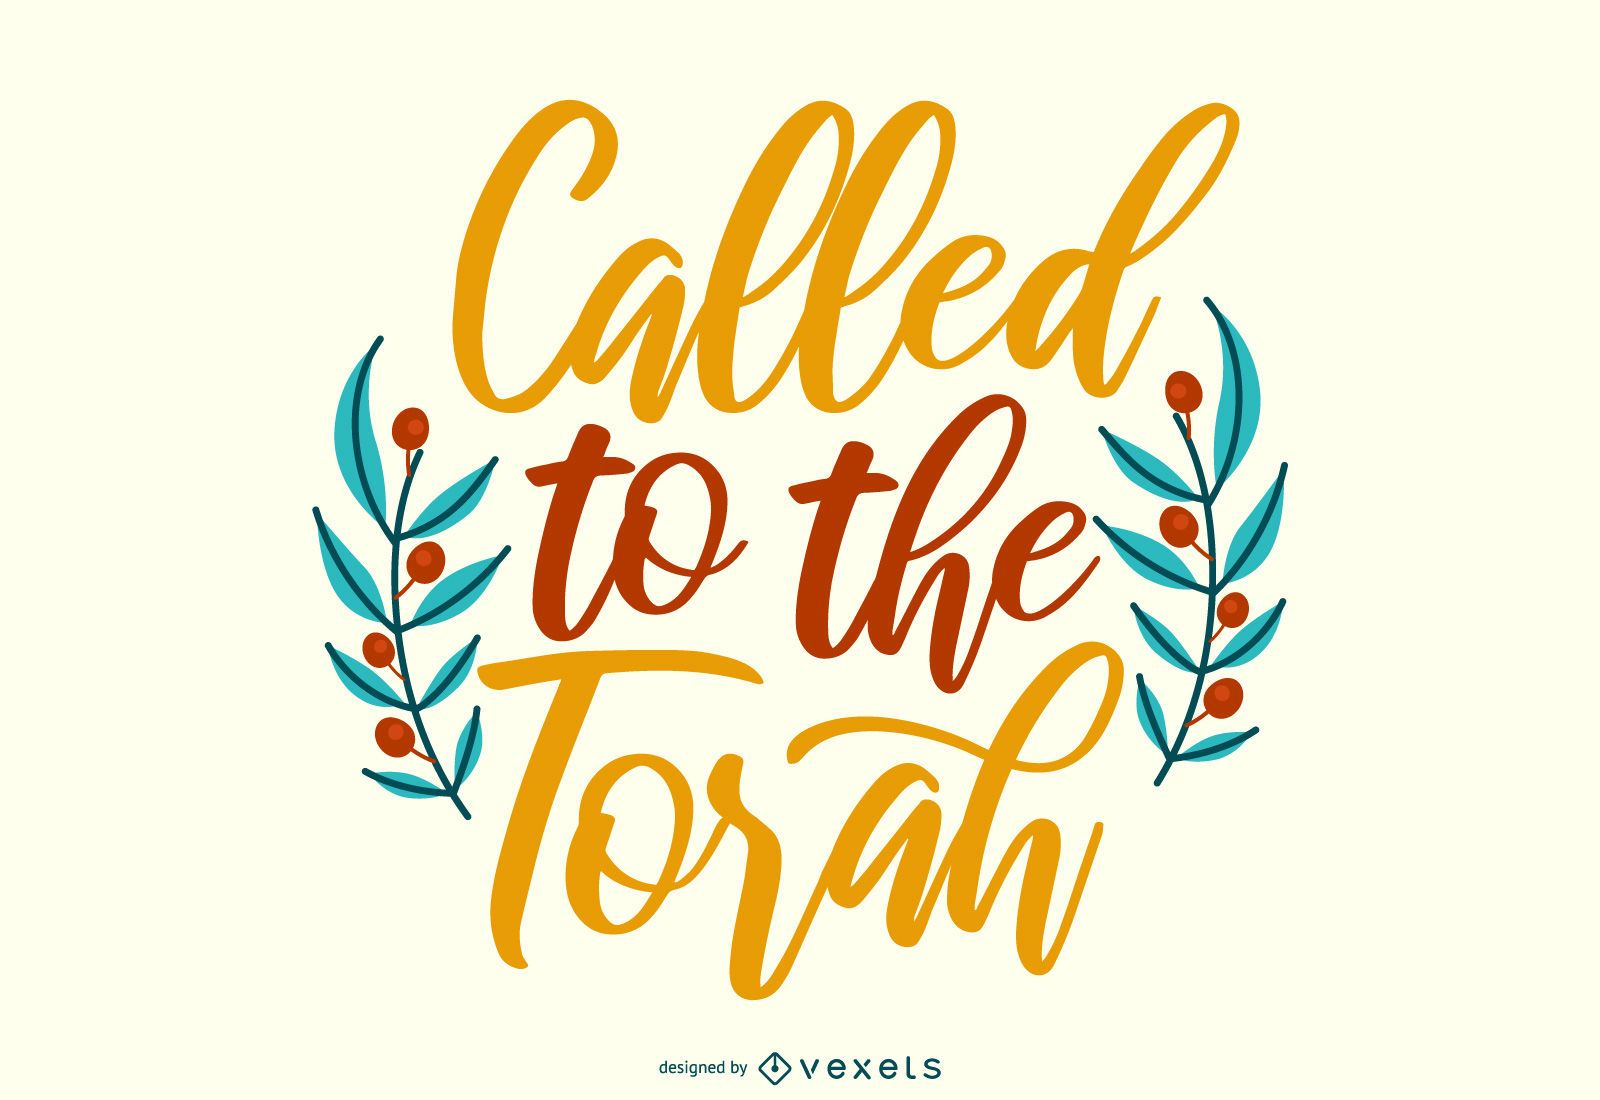 Called to the Torah Illustration